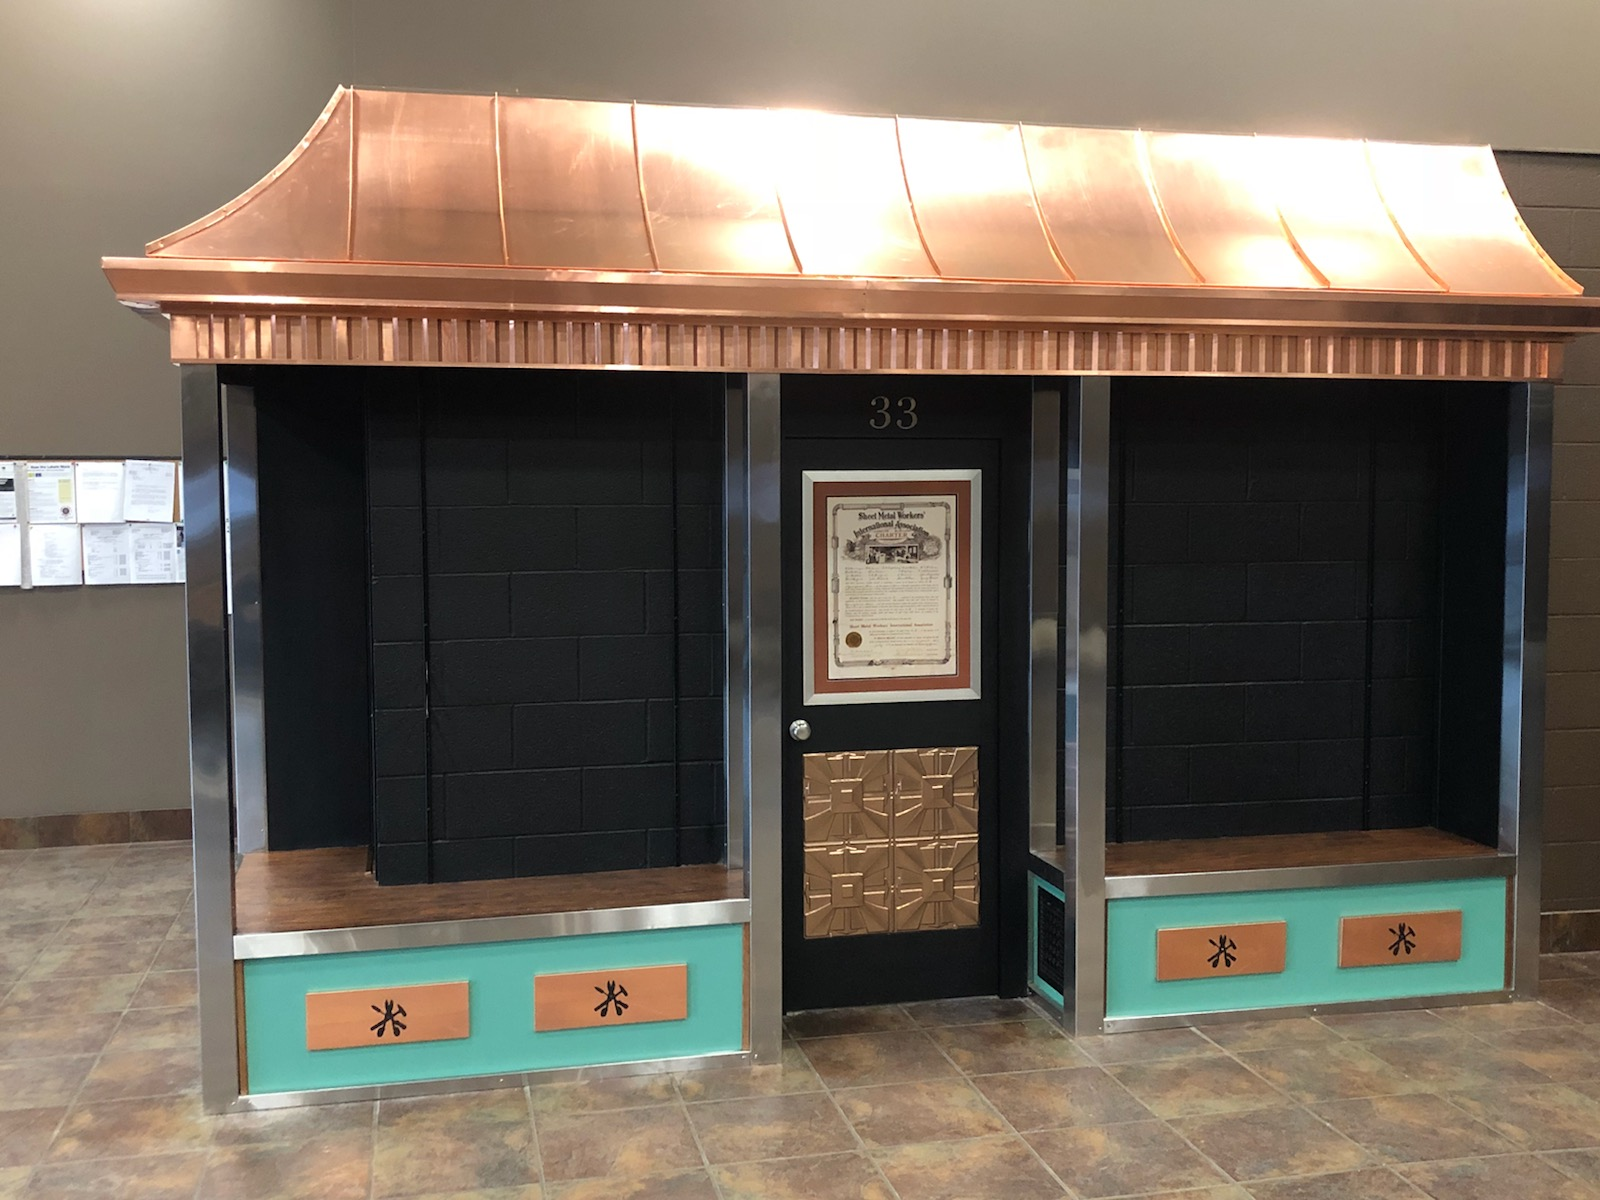 Showcase at the Youngstown District Union Hall, Nearing Completion.